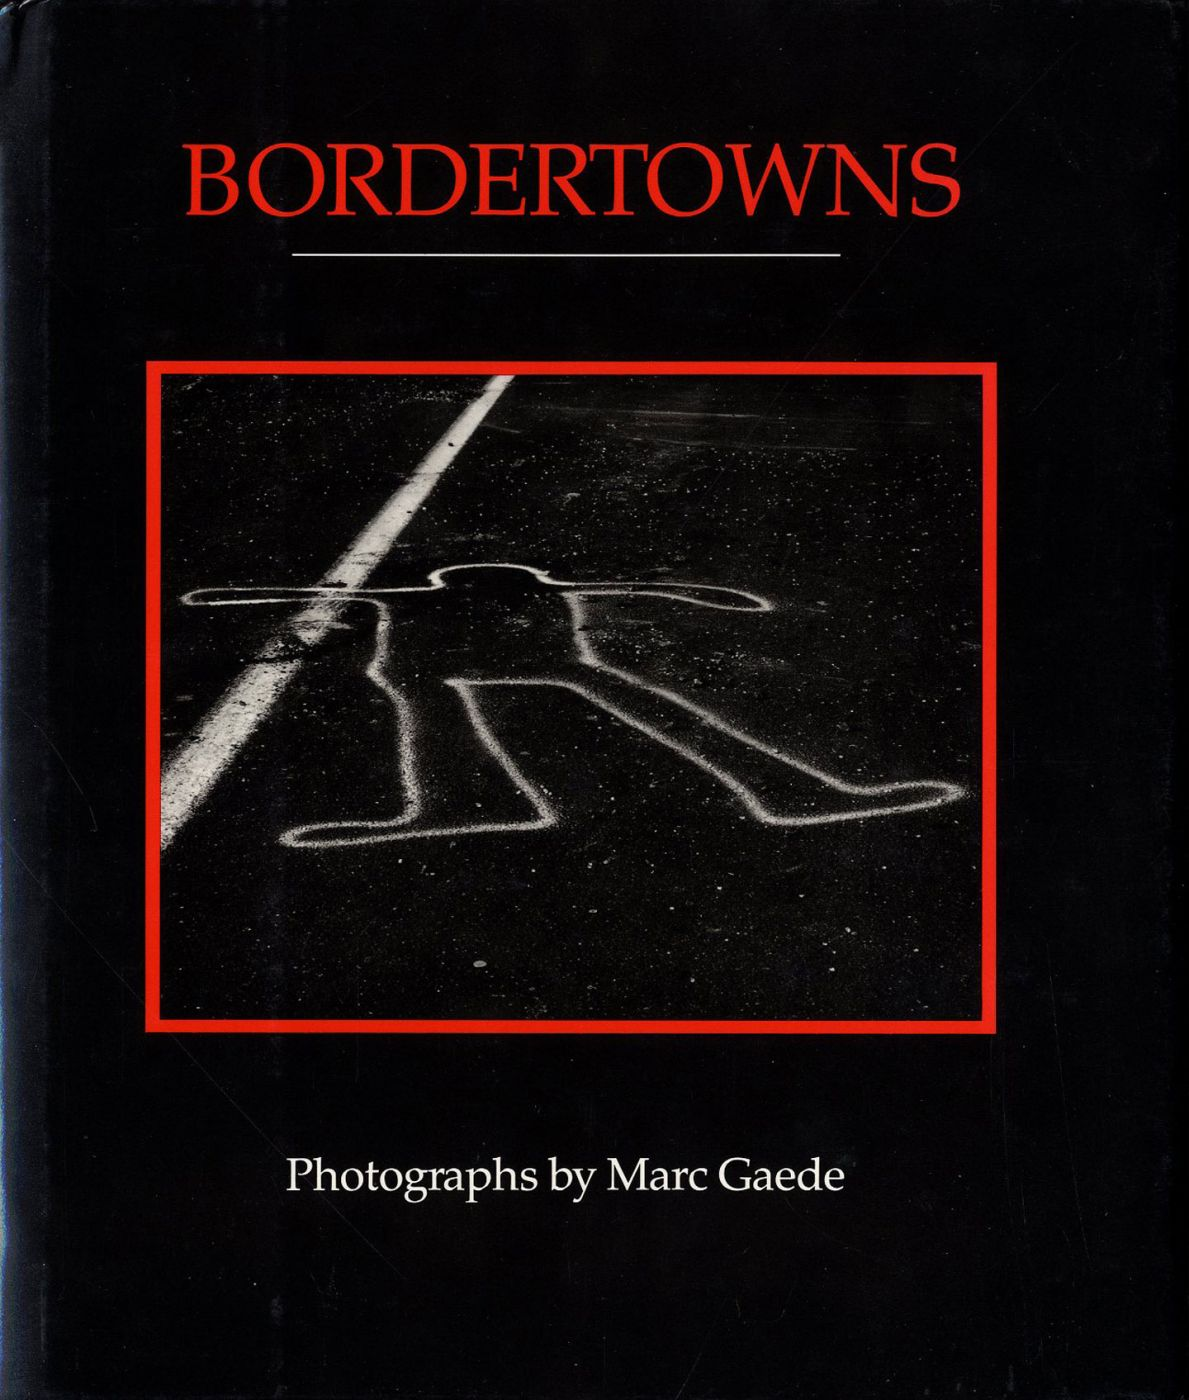 Bordertowns: Photographs by Marc Gaede